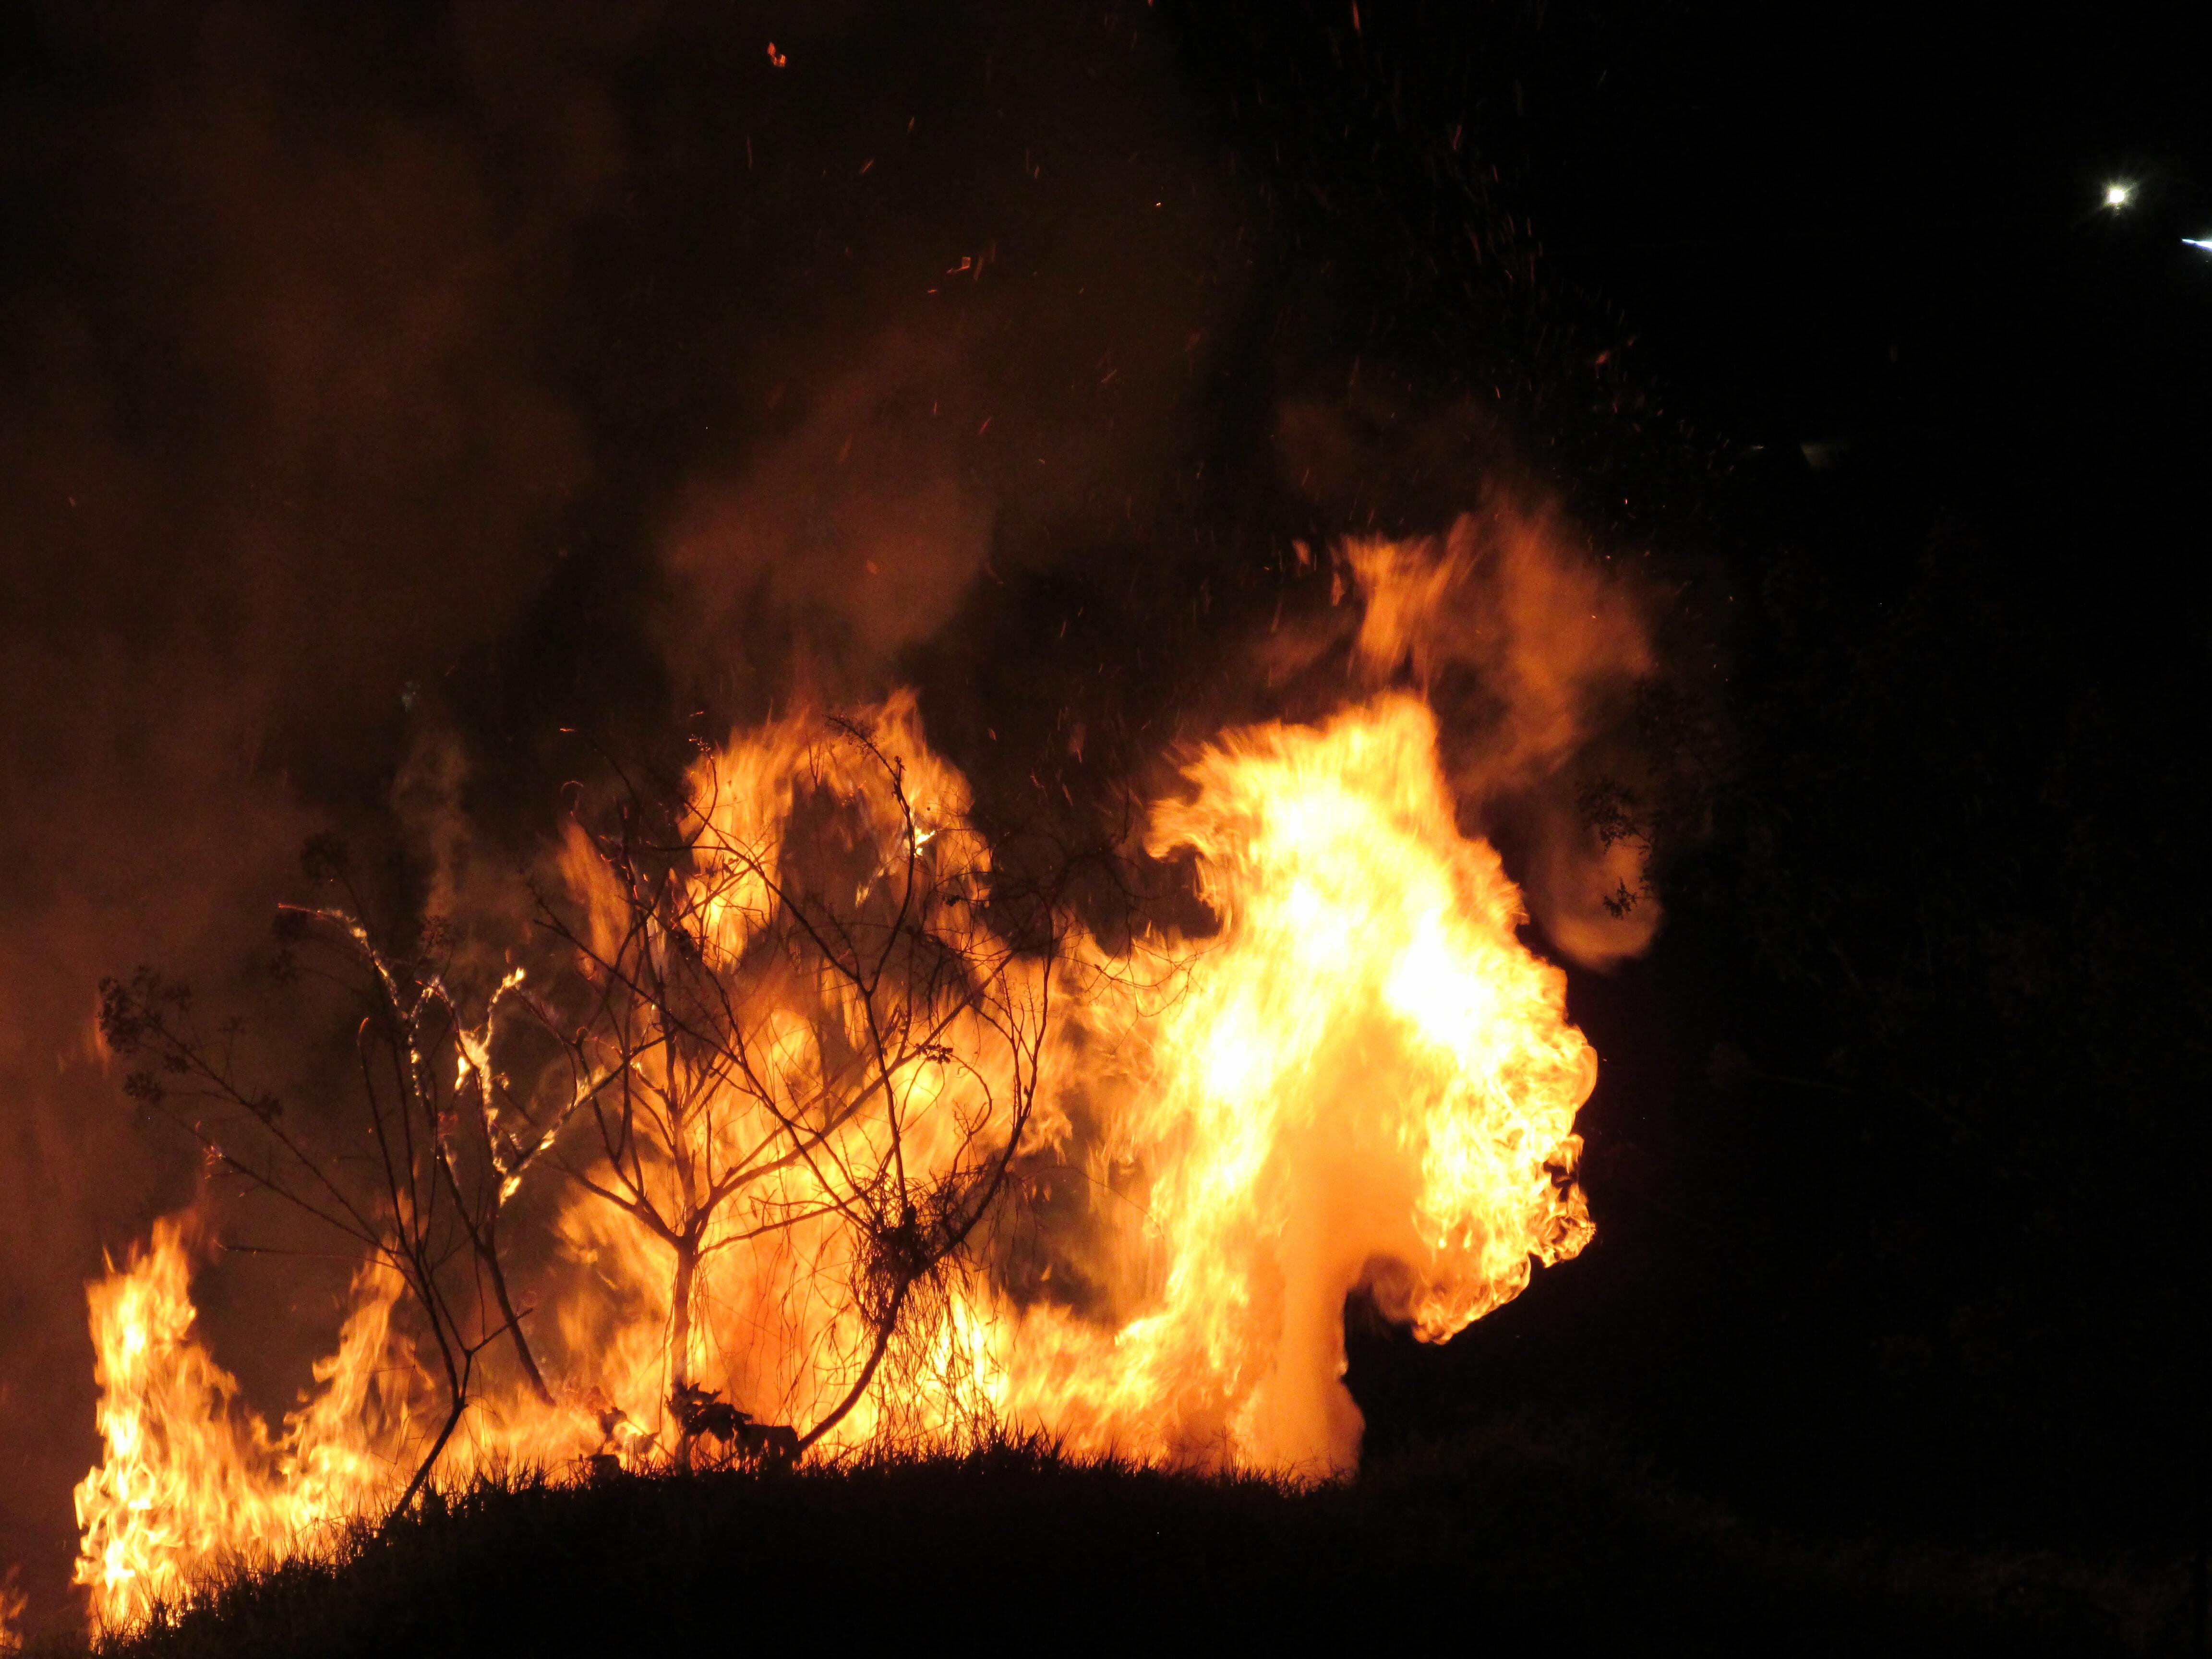 silhouette of trees in night fire